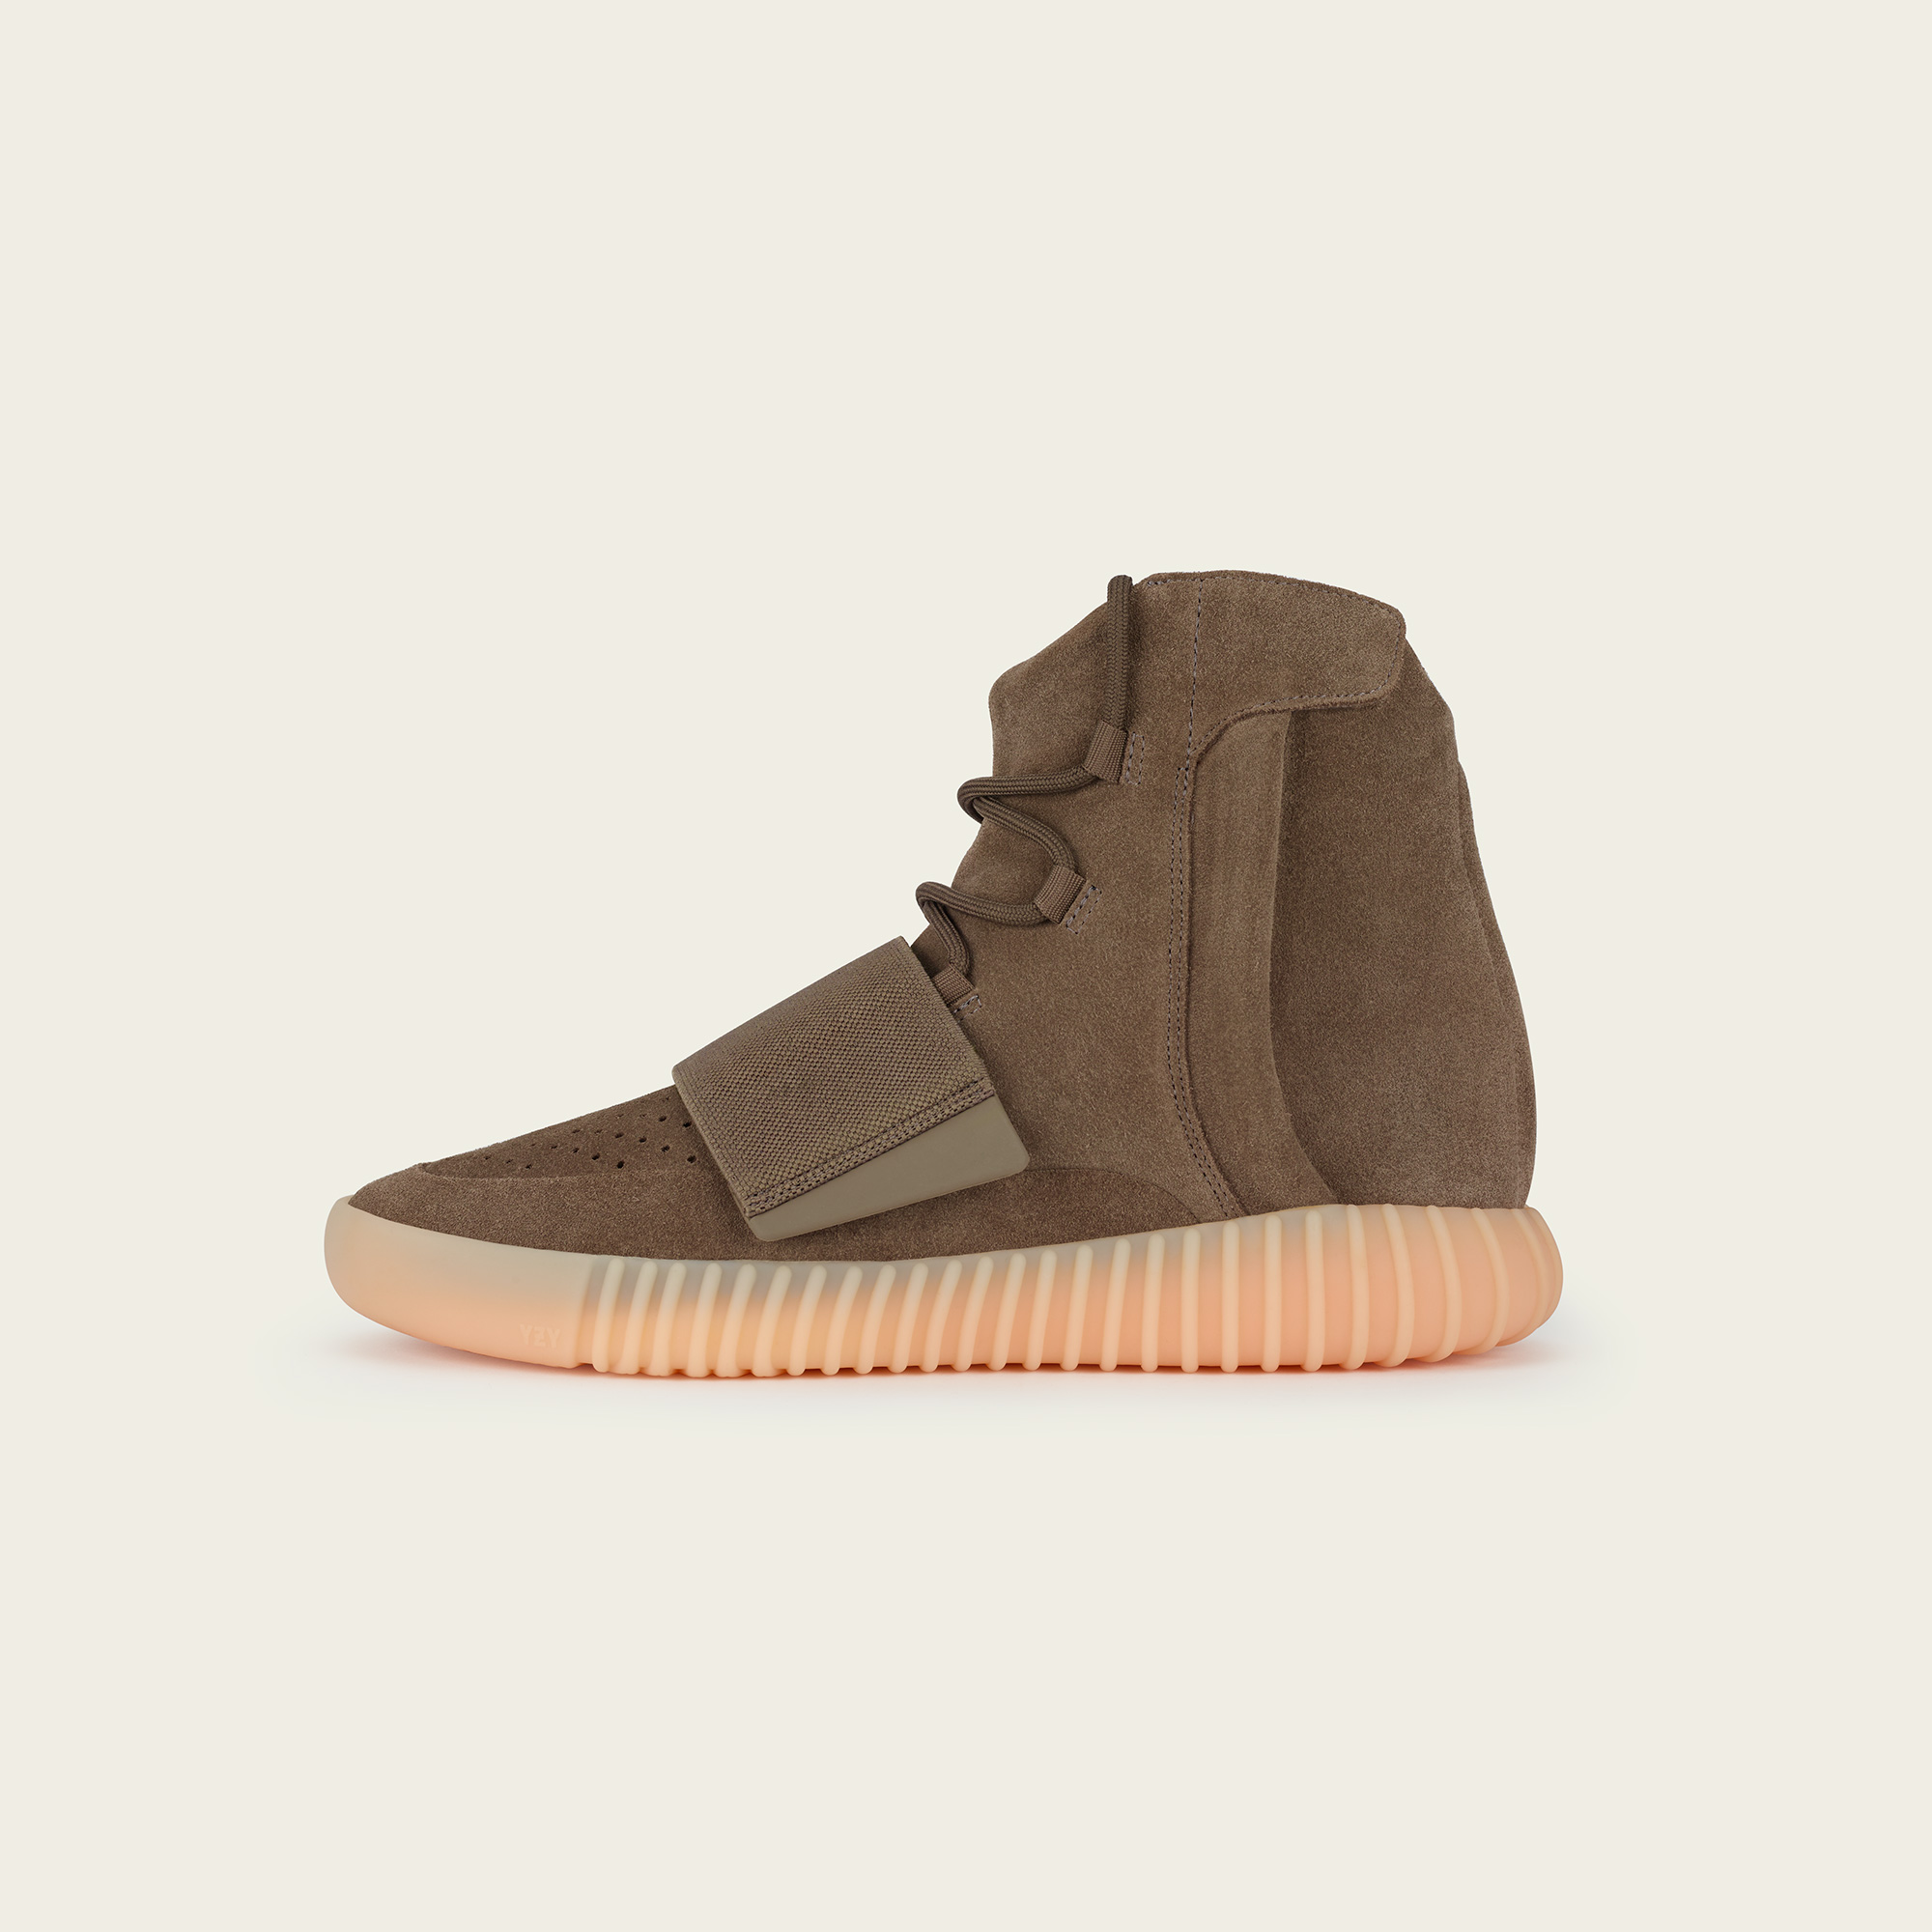 adidas-yeezy-boost-750-brown-4